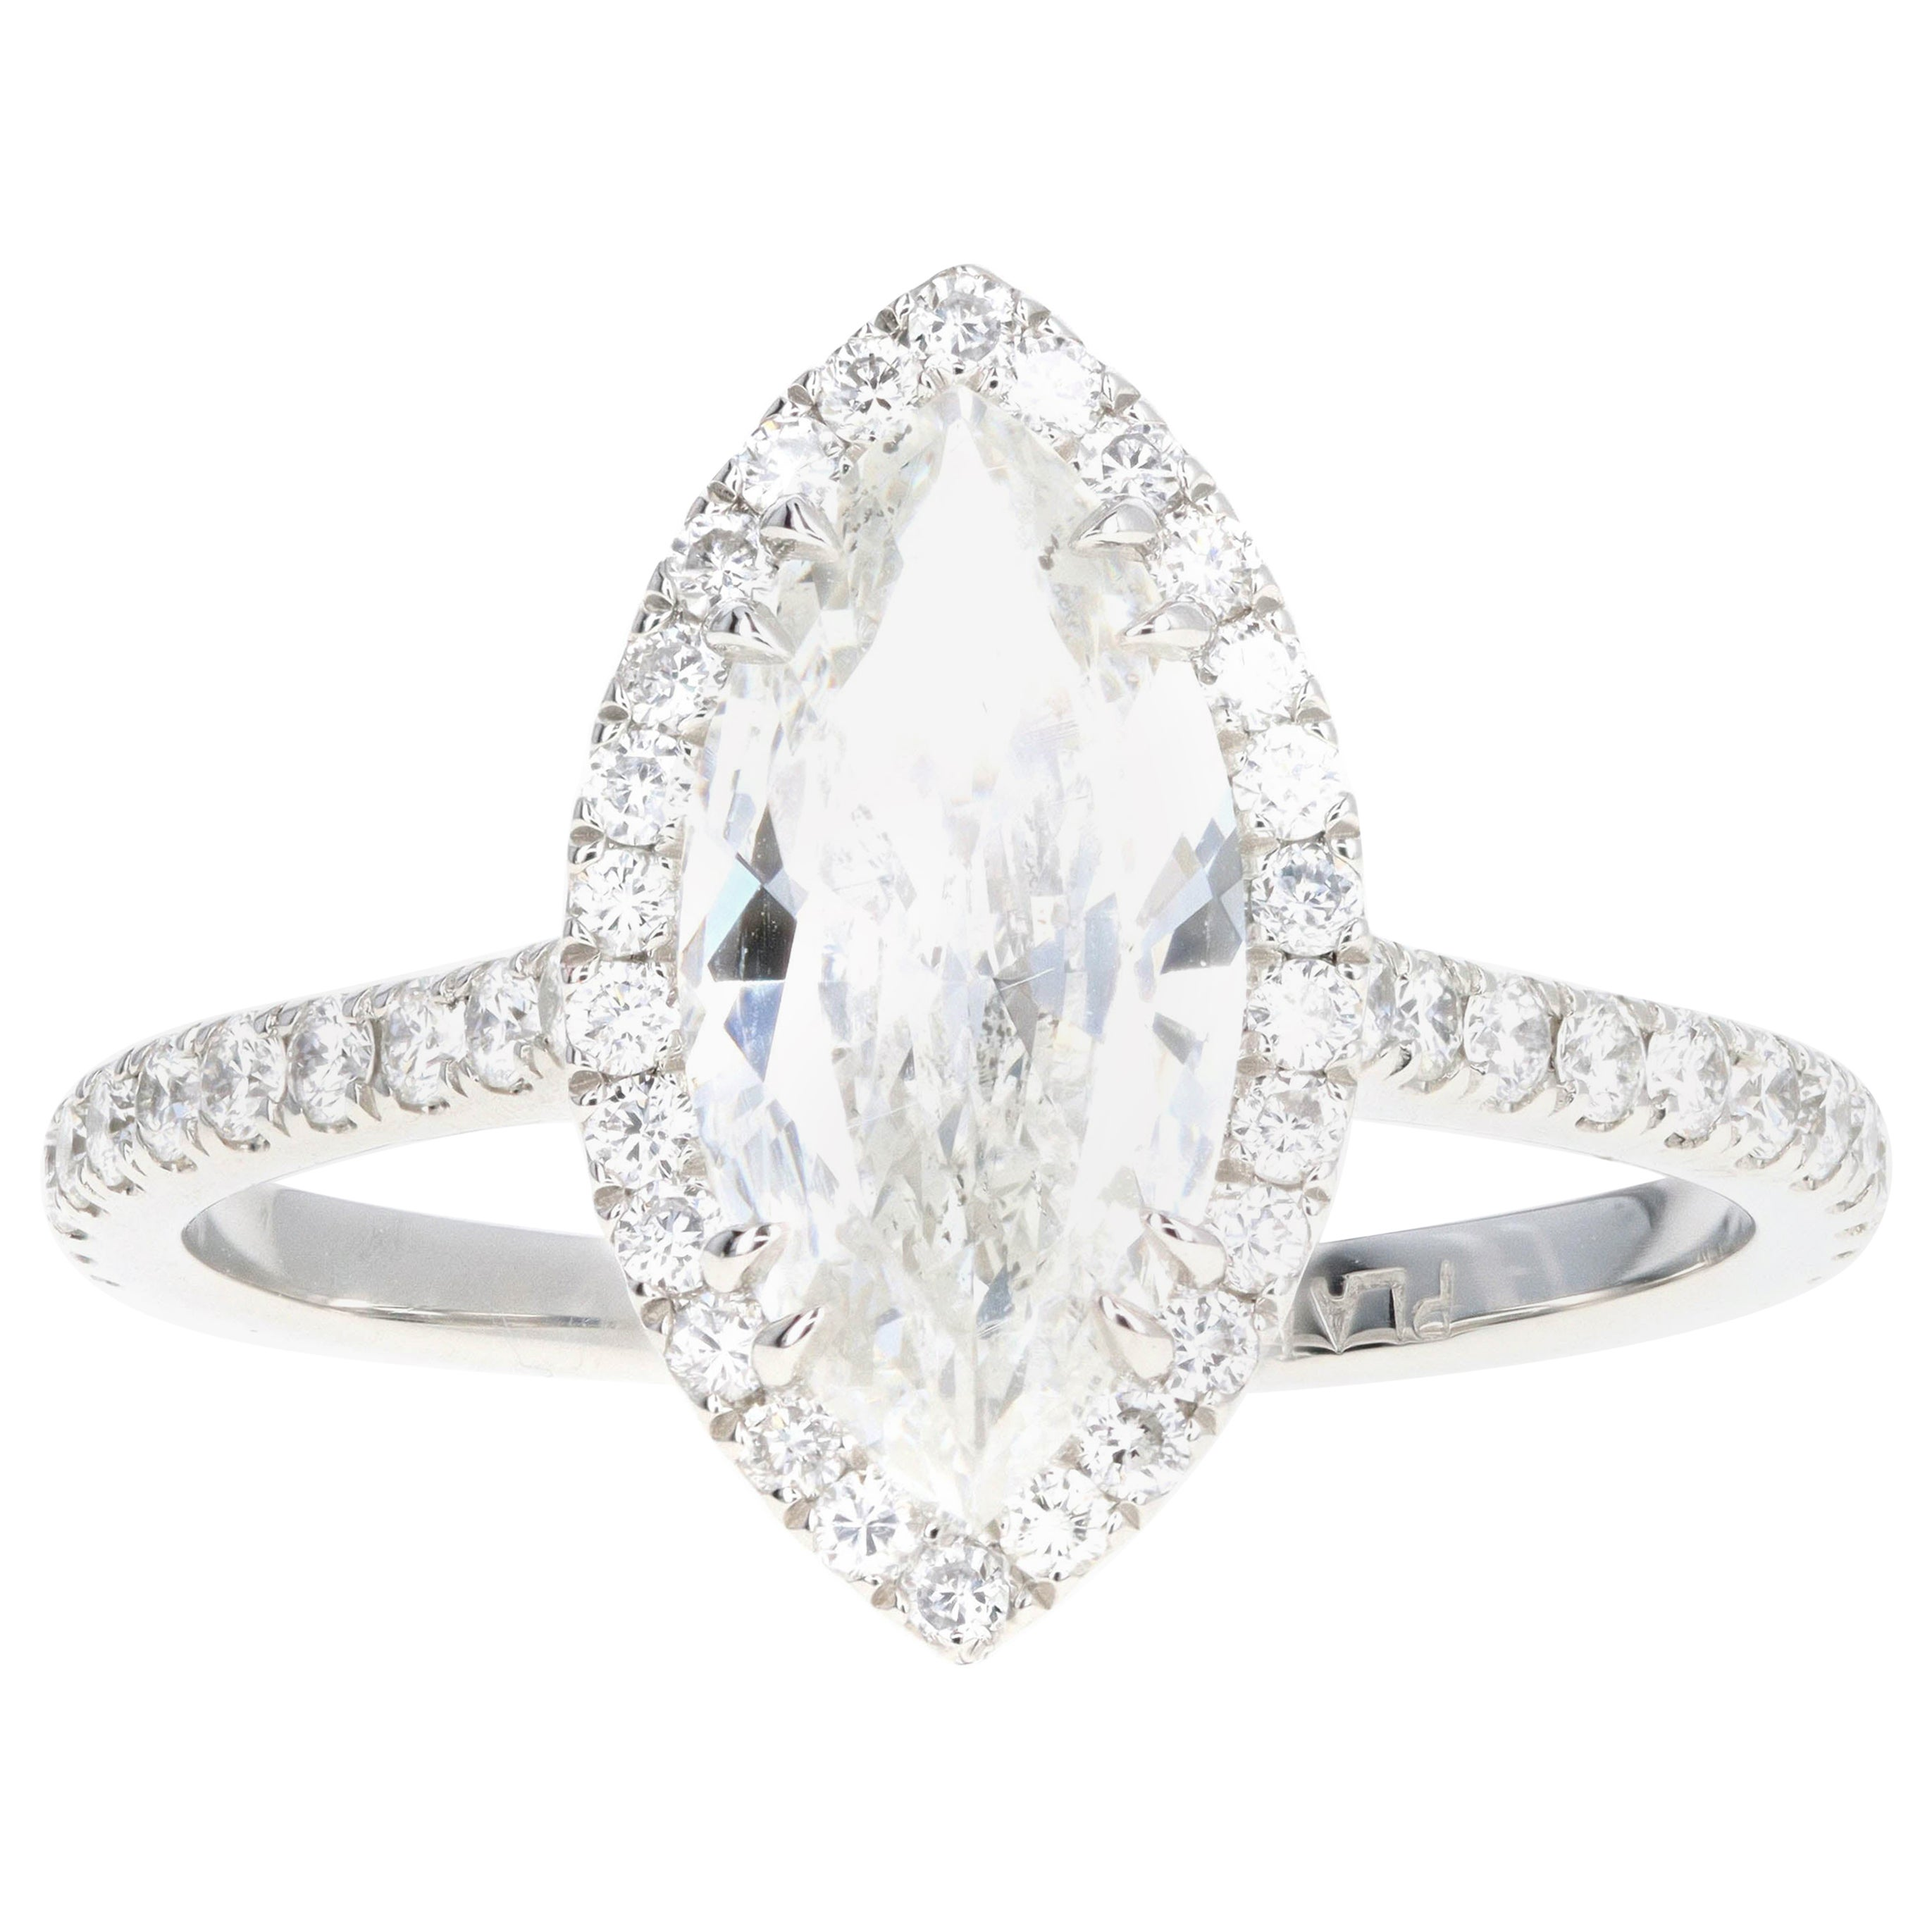 Platinum 1.59 Carat Marquise Cut Diamond Halo Engagement Ring